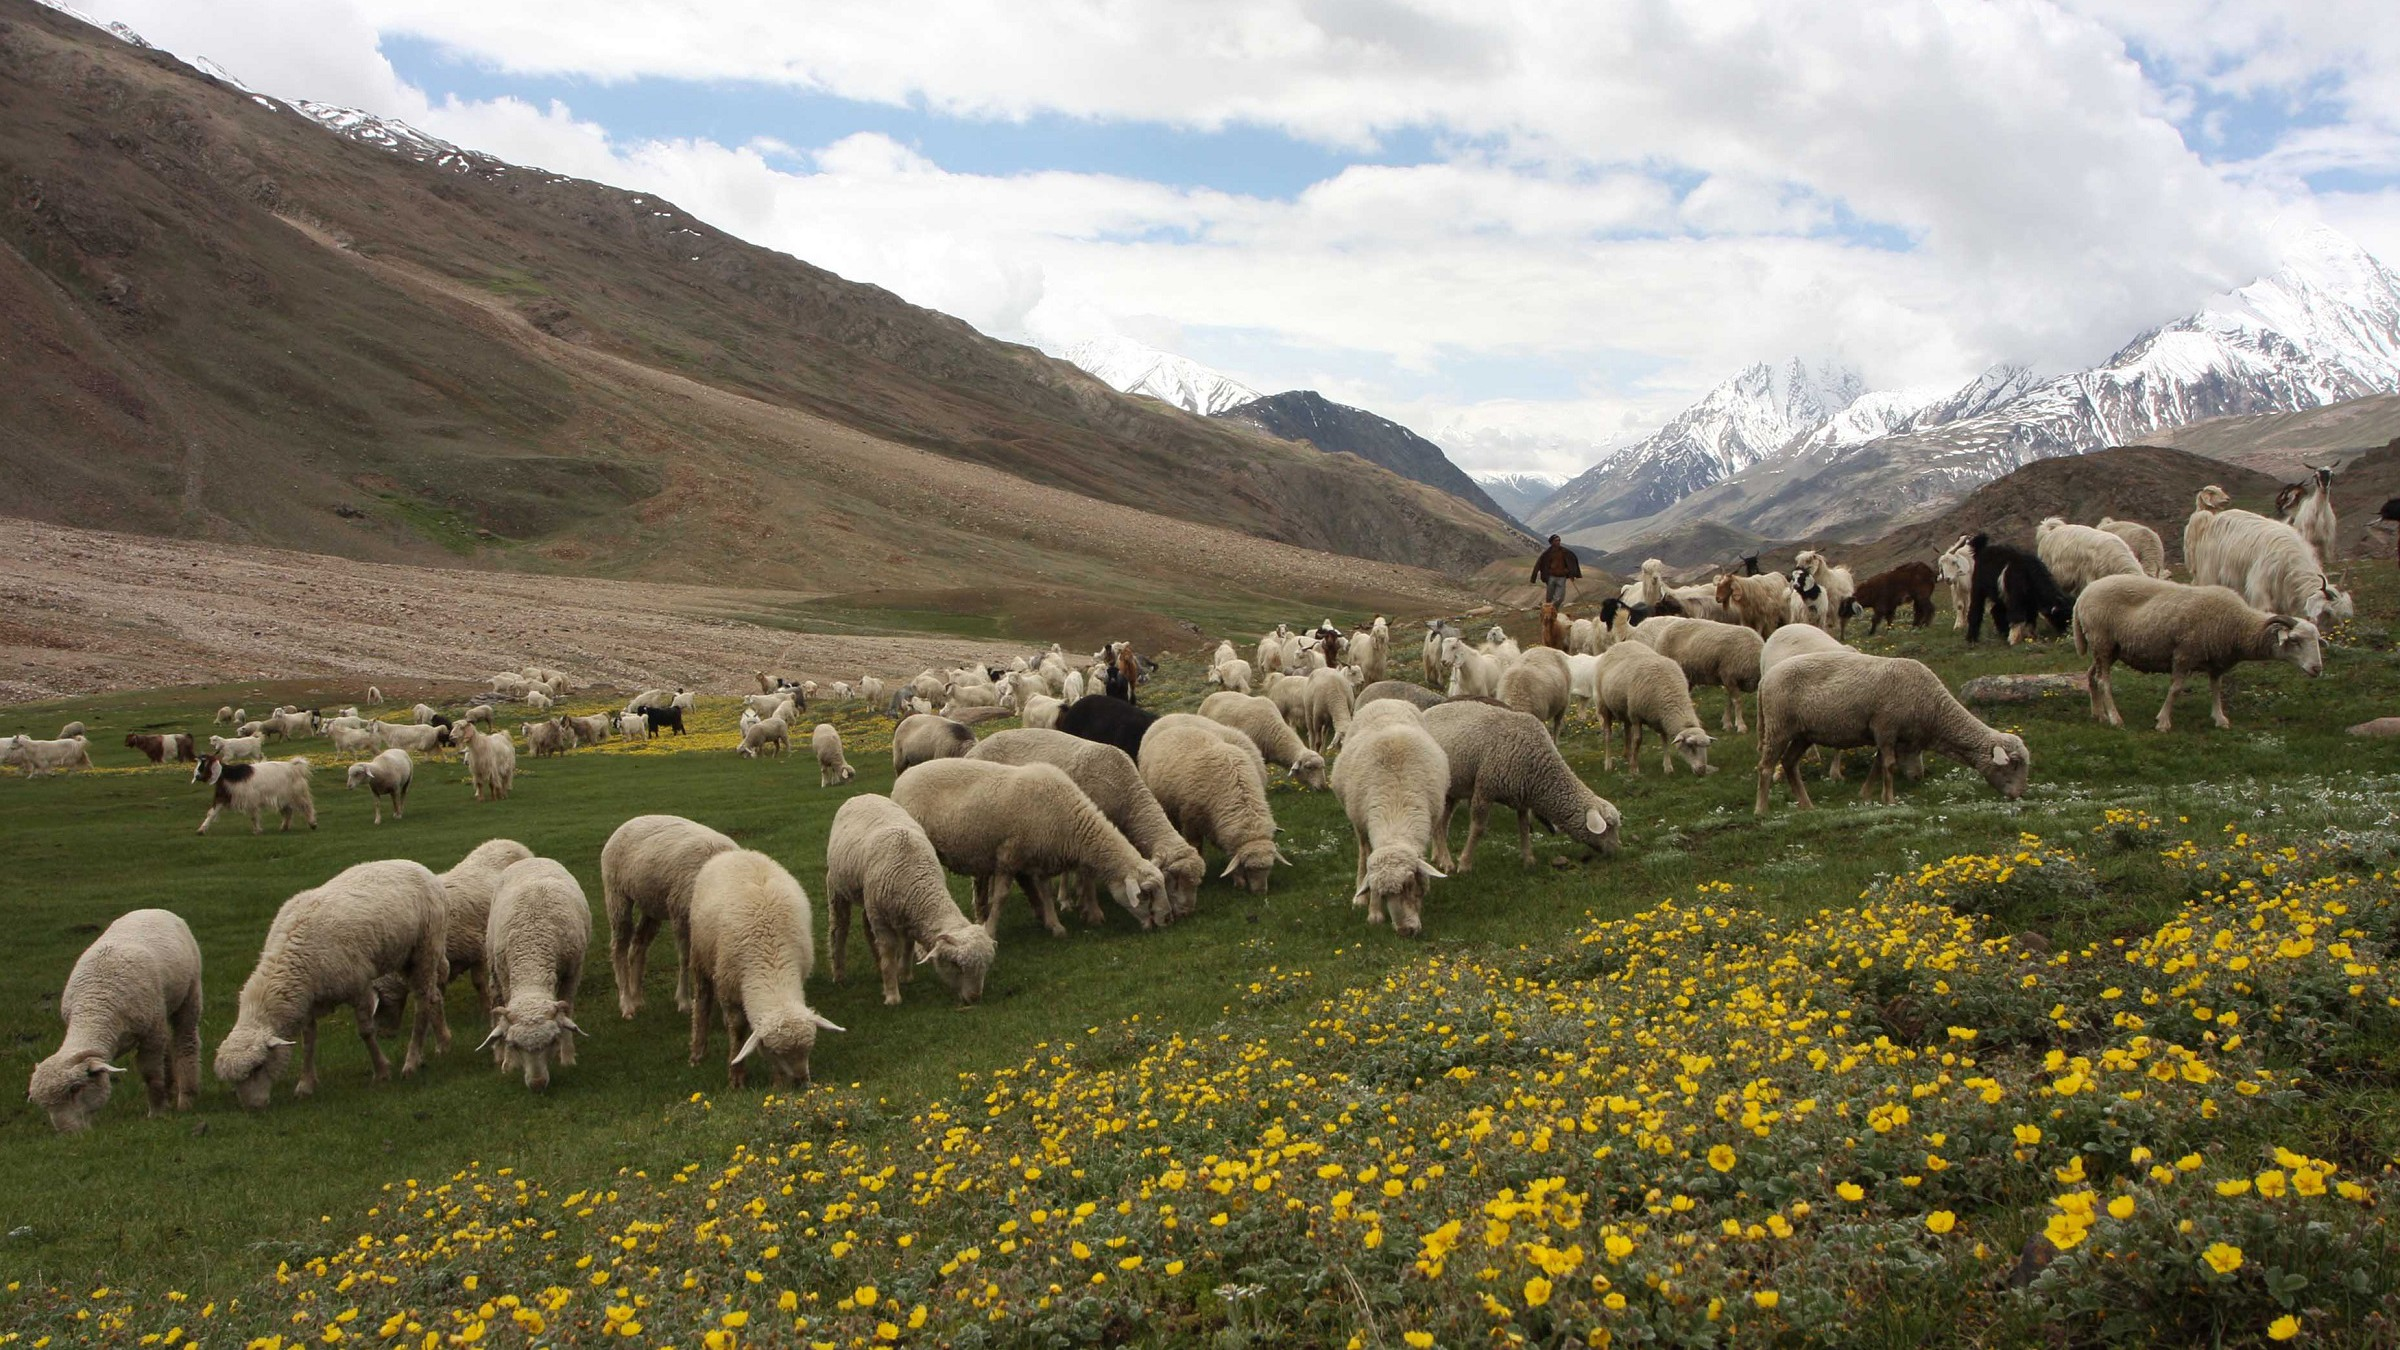 A shepherd watches as sheep graze on a pasture near Batal village, in the Lahoul & Spiti district in the northern Indian state of Himachal Pradesh, July 15, 2009.   REUTERS/Stringer (INDIA SOCIETY ANIMALS) - RTR25OQ7